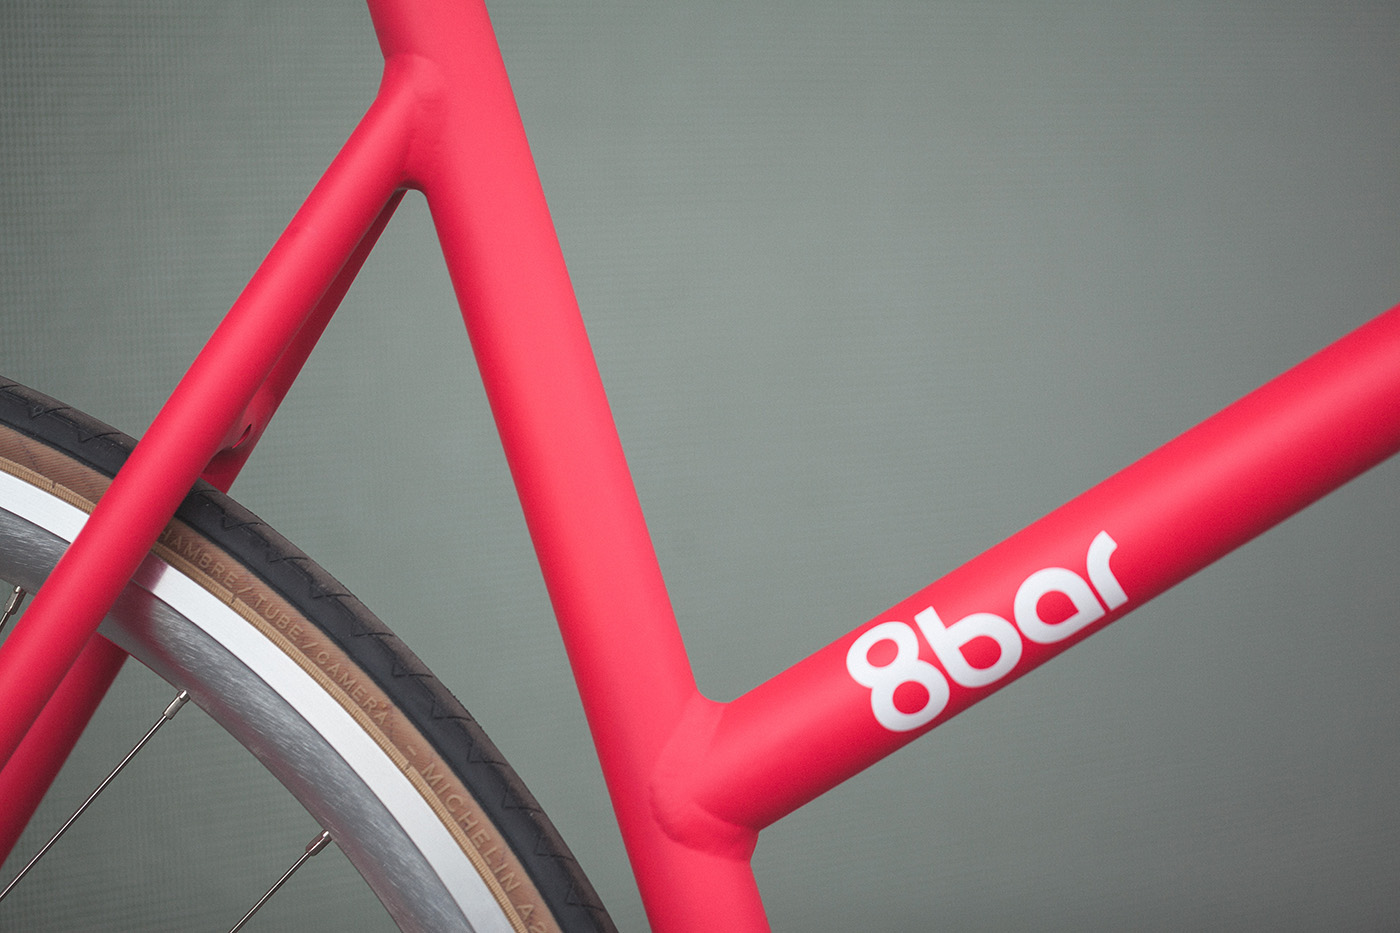 8bar_fhain_v2_women_candy_pink_fixed_gear_fixie_complete_wmn_003